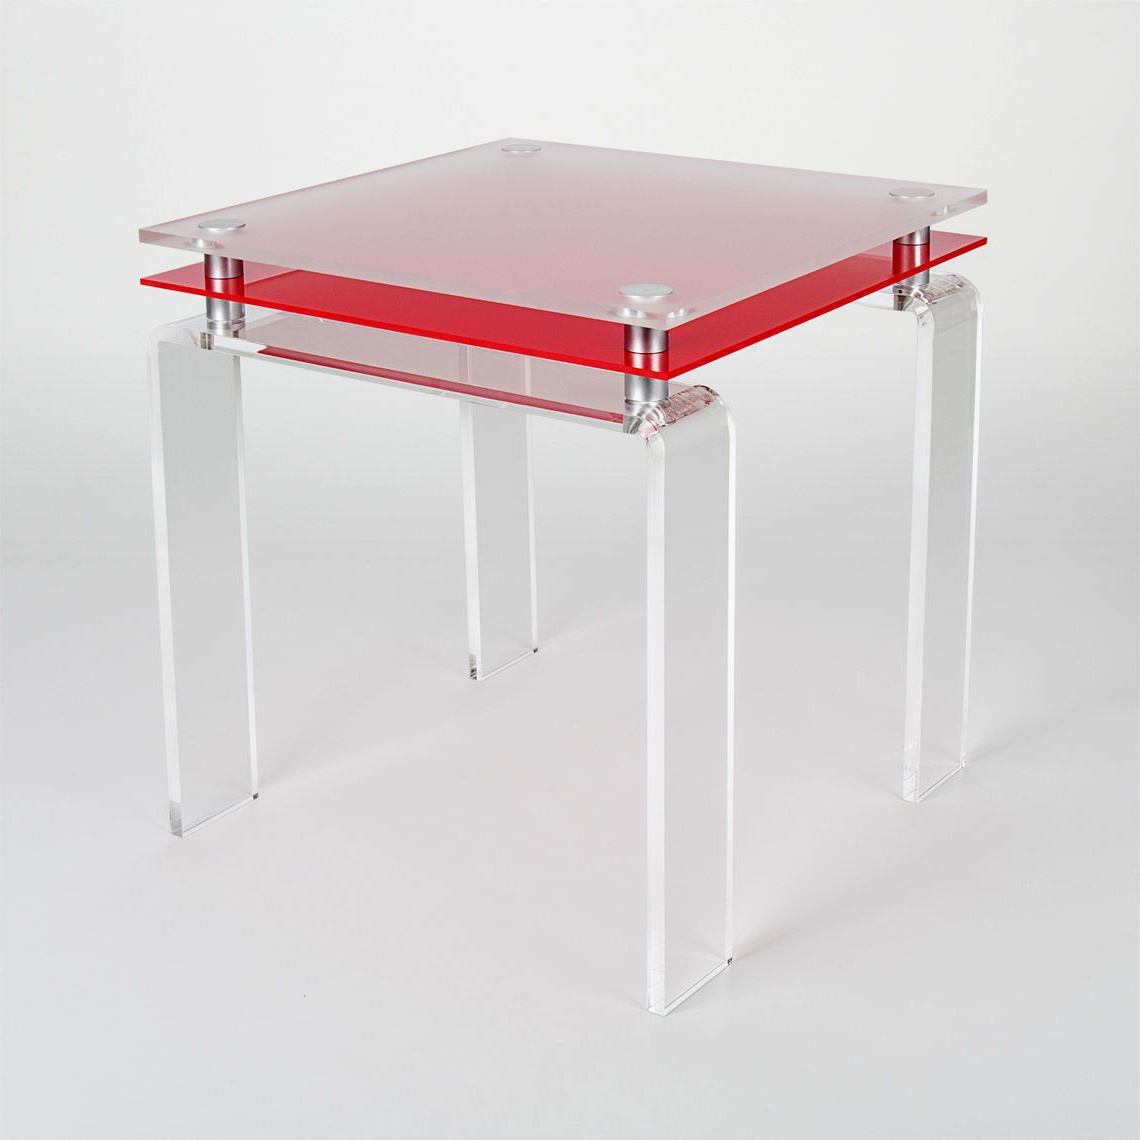 Modern Acrylic Coffee Tables Pertaining To Well Known Modern Acrylic Coffee Table (View 15 of 20)